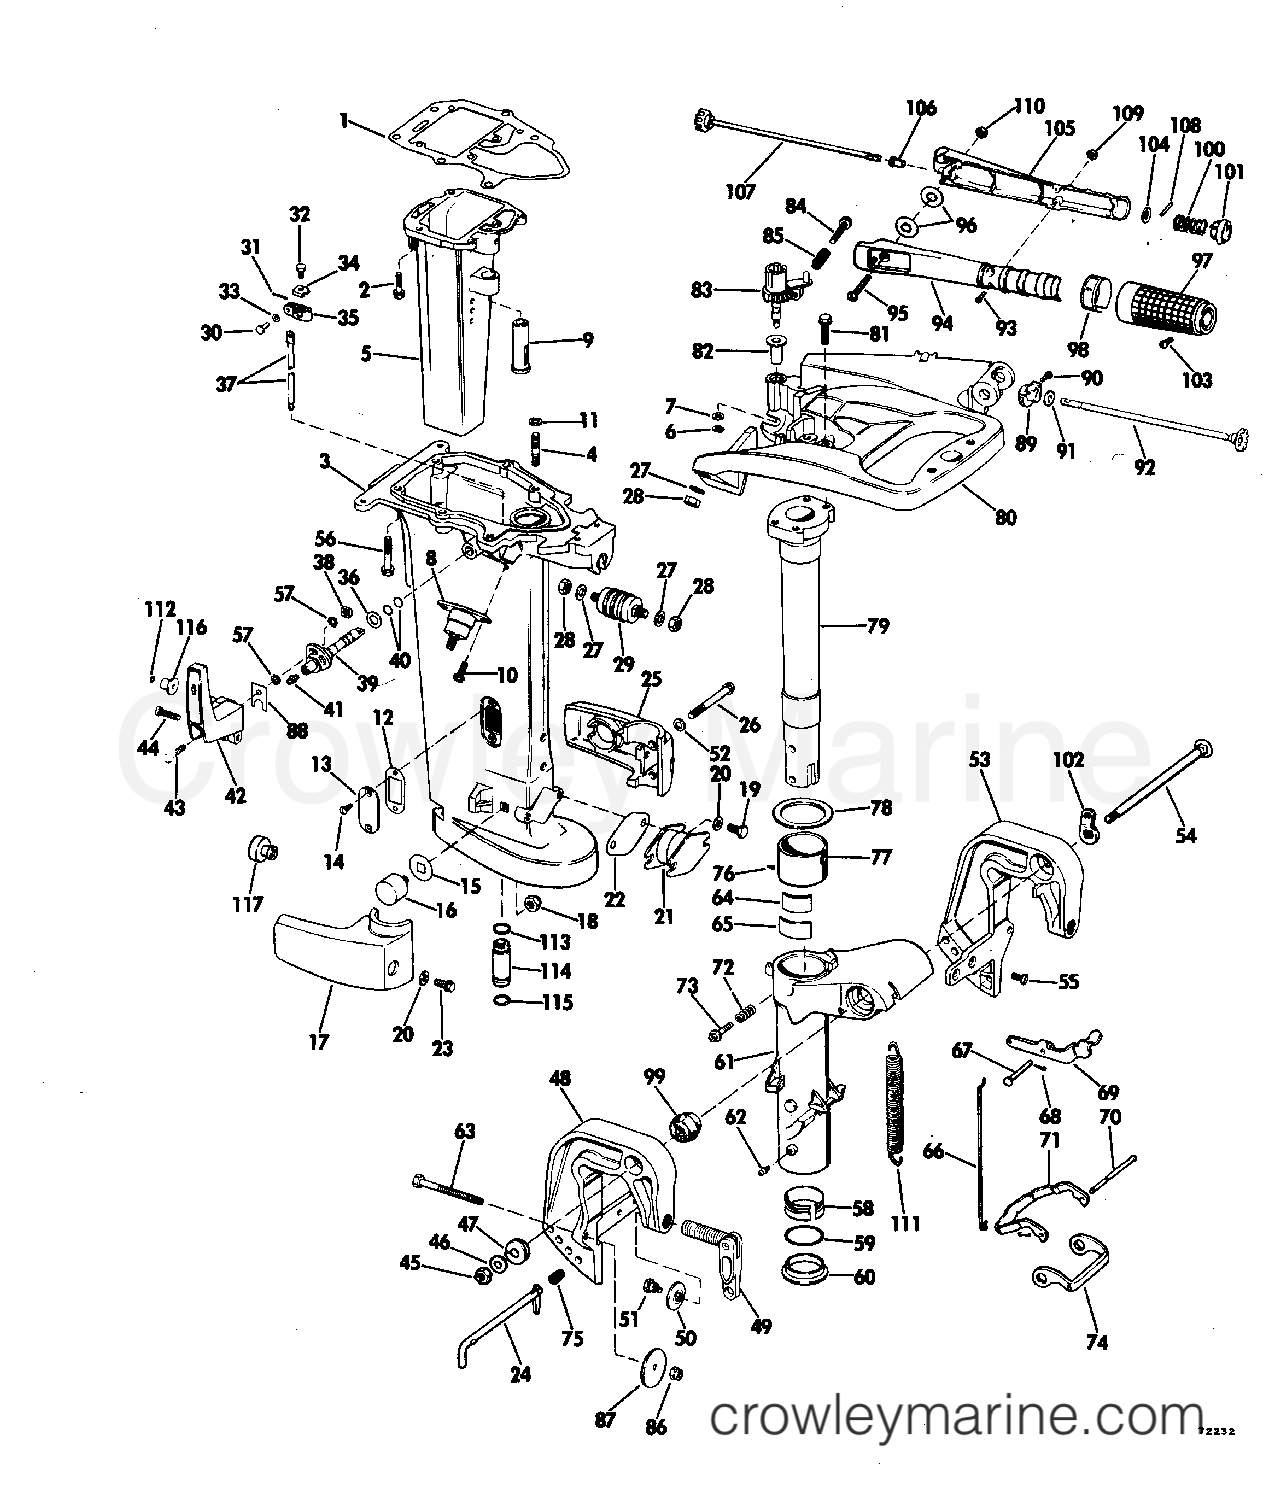 25 hp johnson outboard parts diagram blank rock cycle worksheet exhaust housing 1977 evinrude outboards 35 35702c